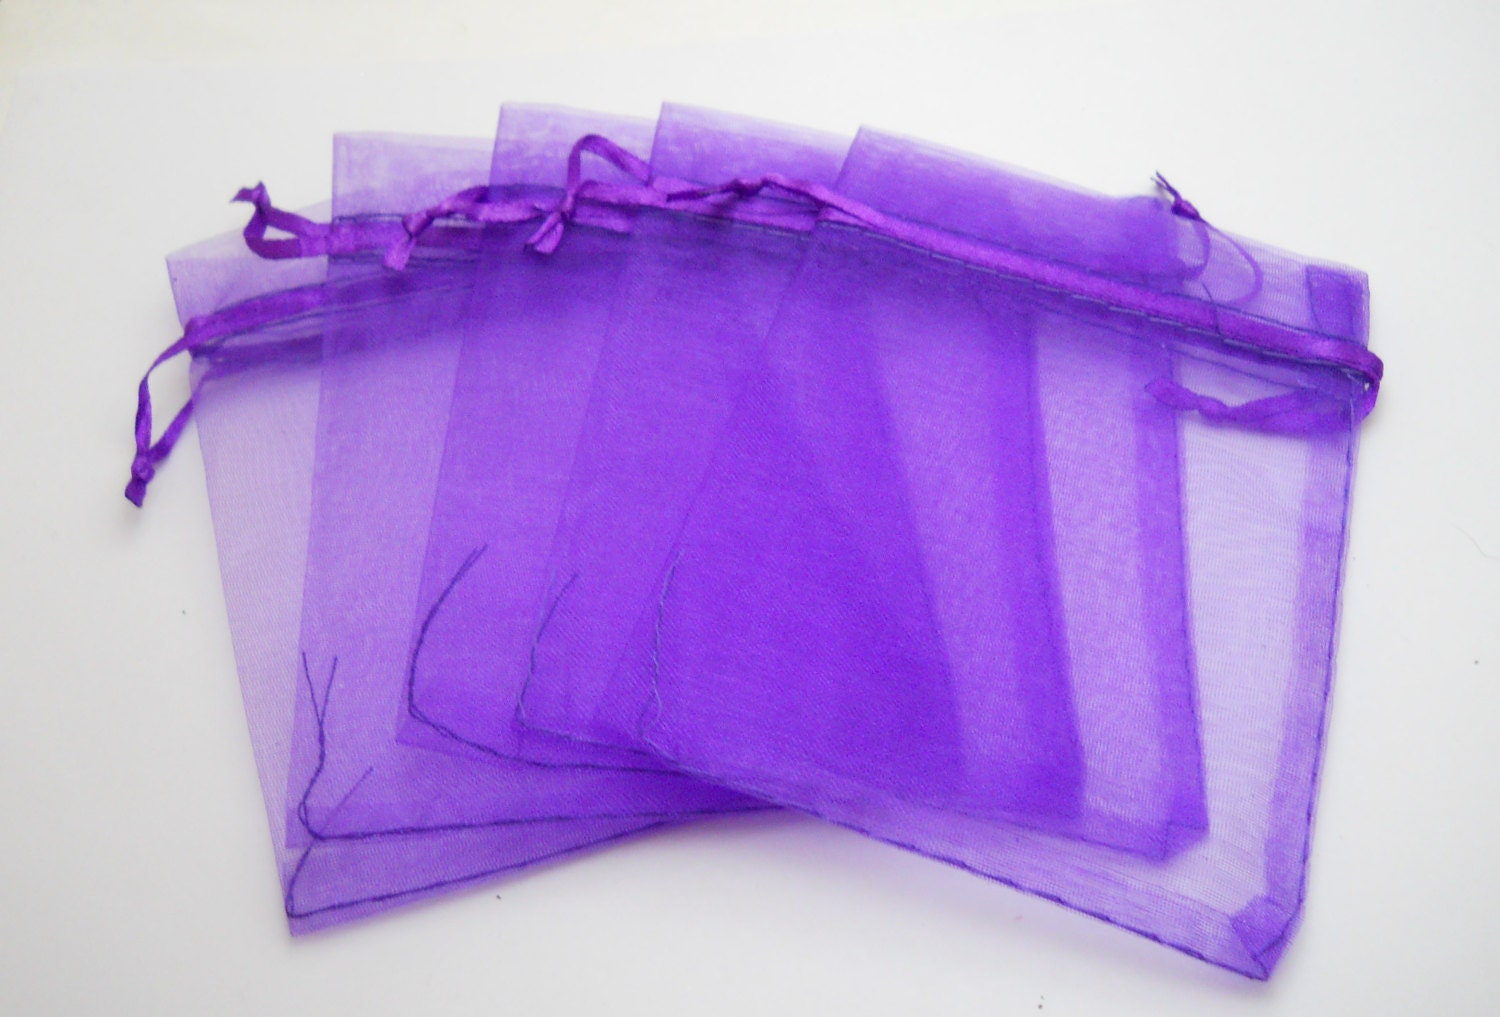 50 purple organza bags 7x9cm bagsgift bag drawstring